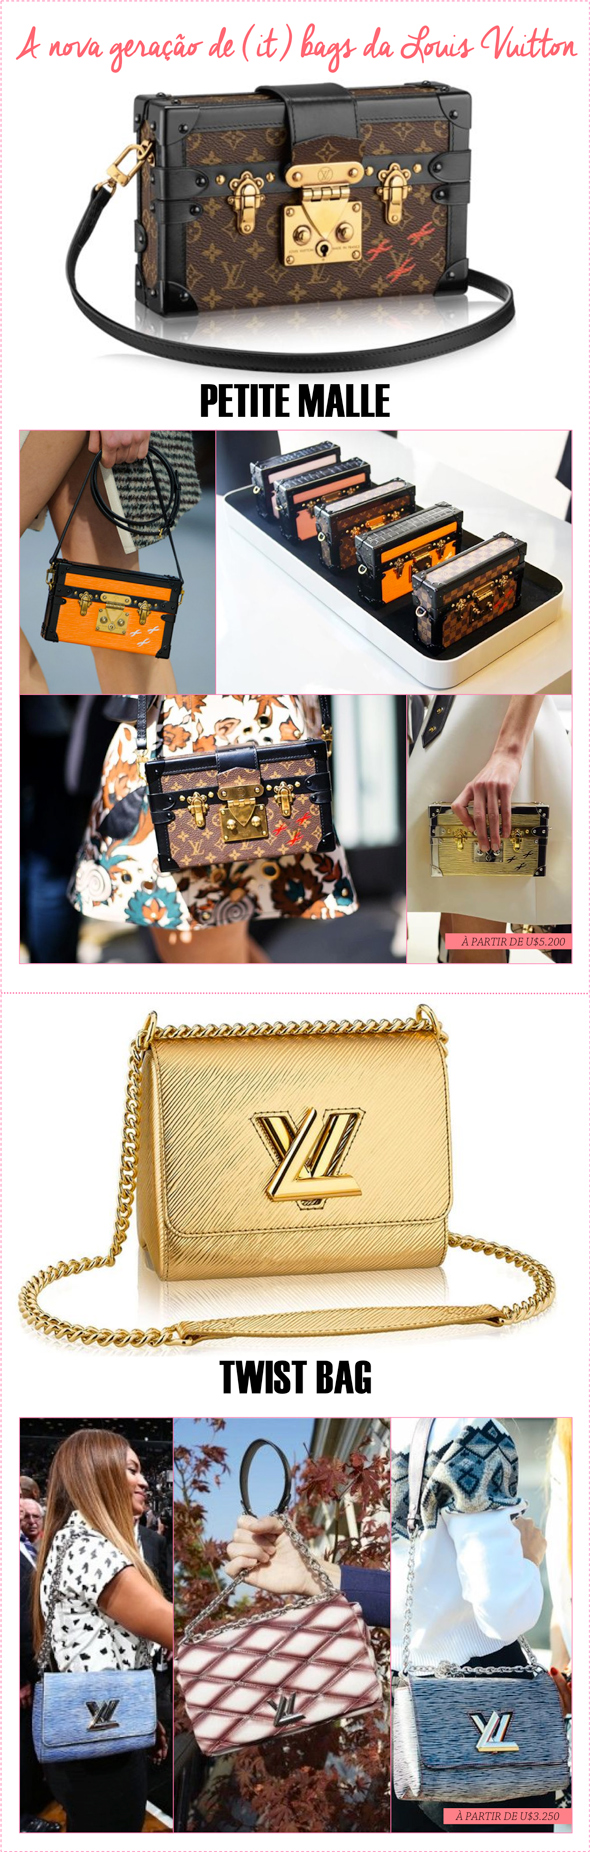 LOUIS-VUITTON-NEW-BAG